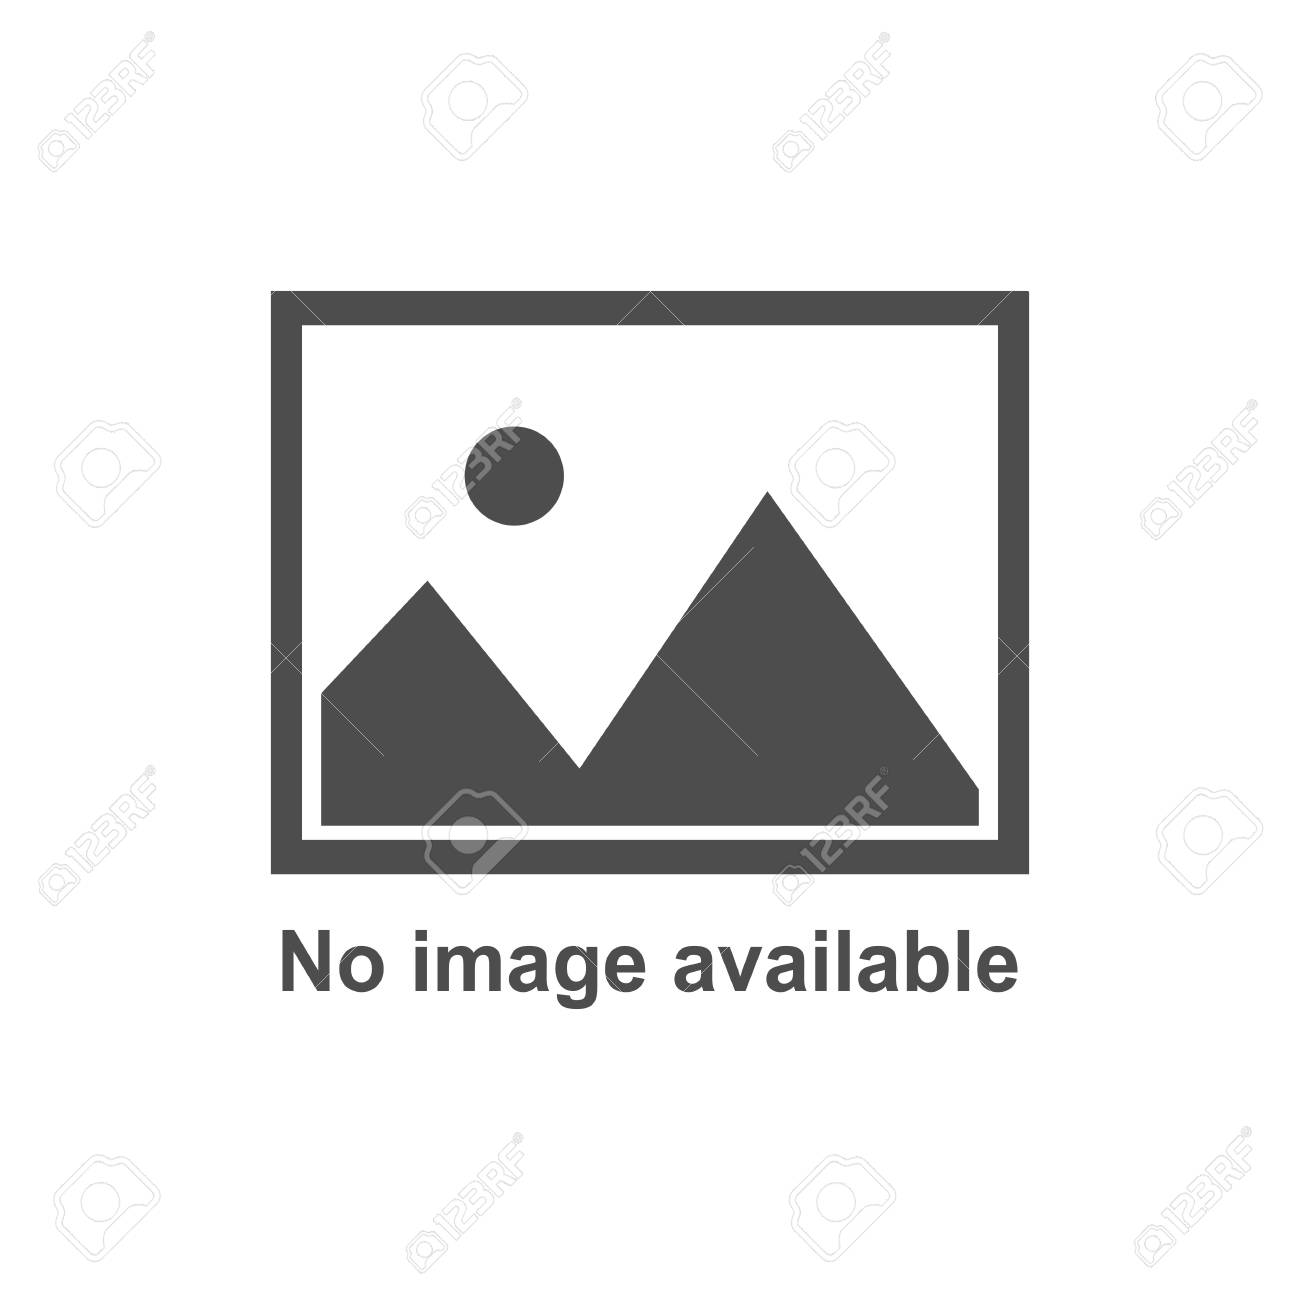 No image available icon. Vector flat - 124934975